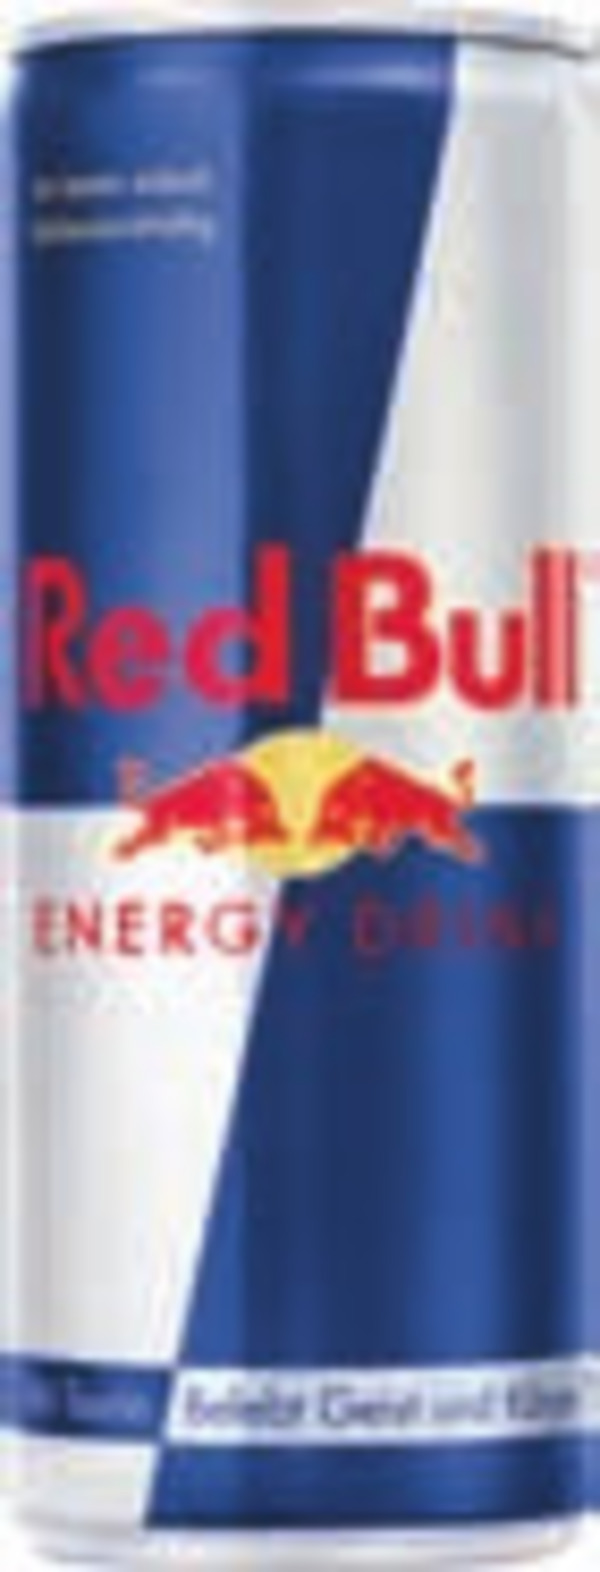 angebot red bull